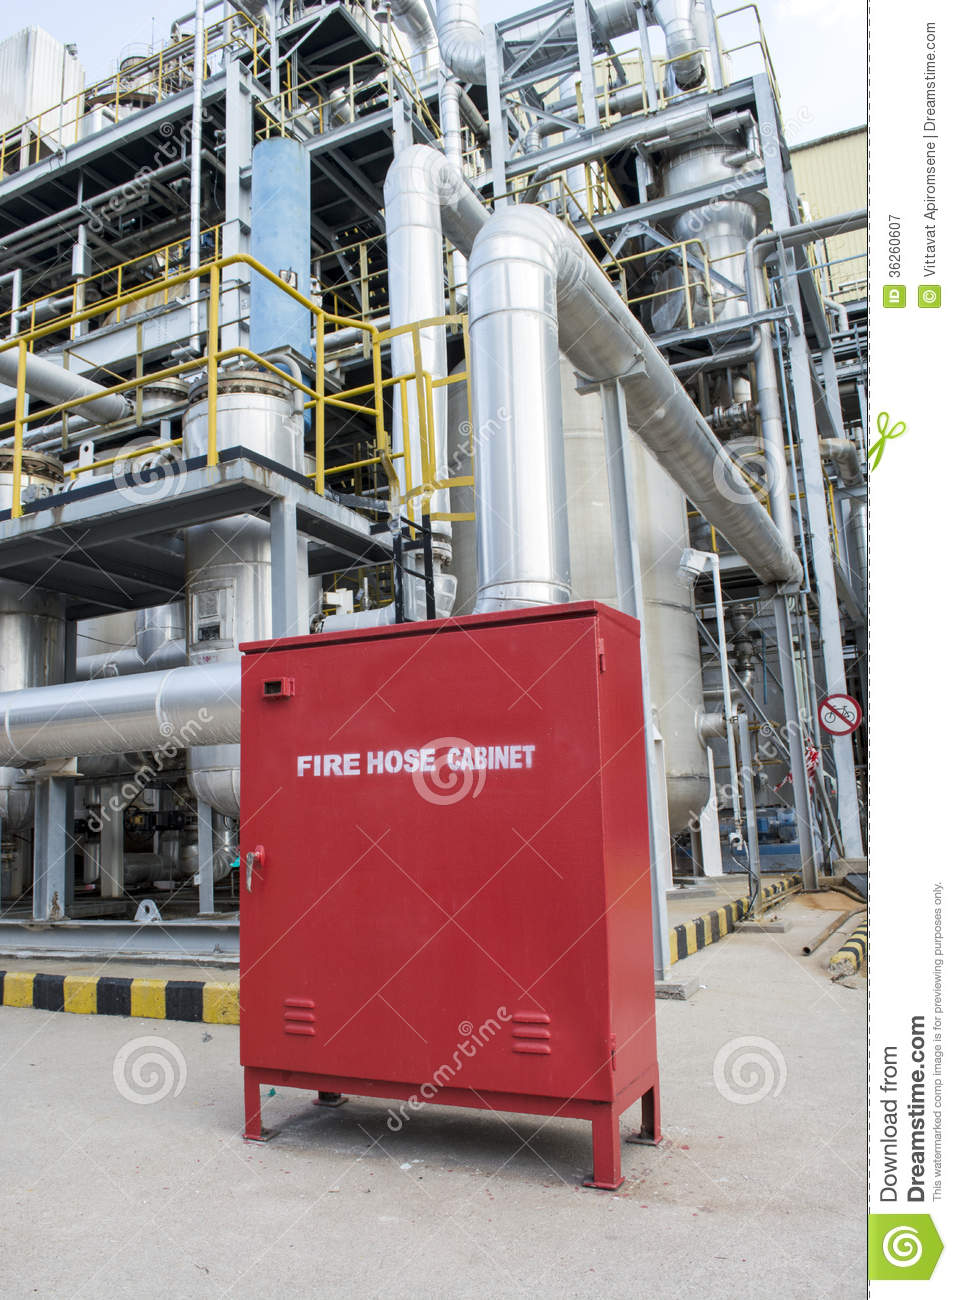 Fire Hose Cabinet In A Factory Plant Stock Image Image